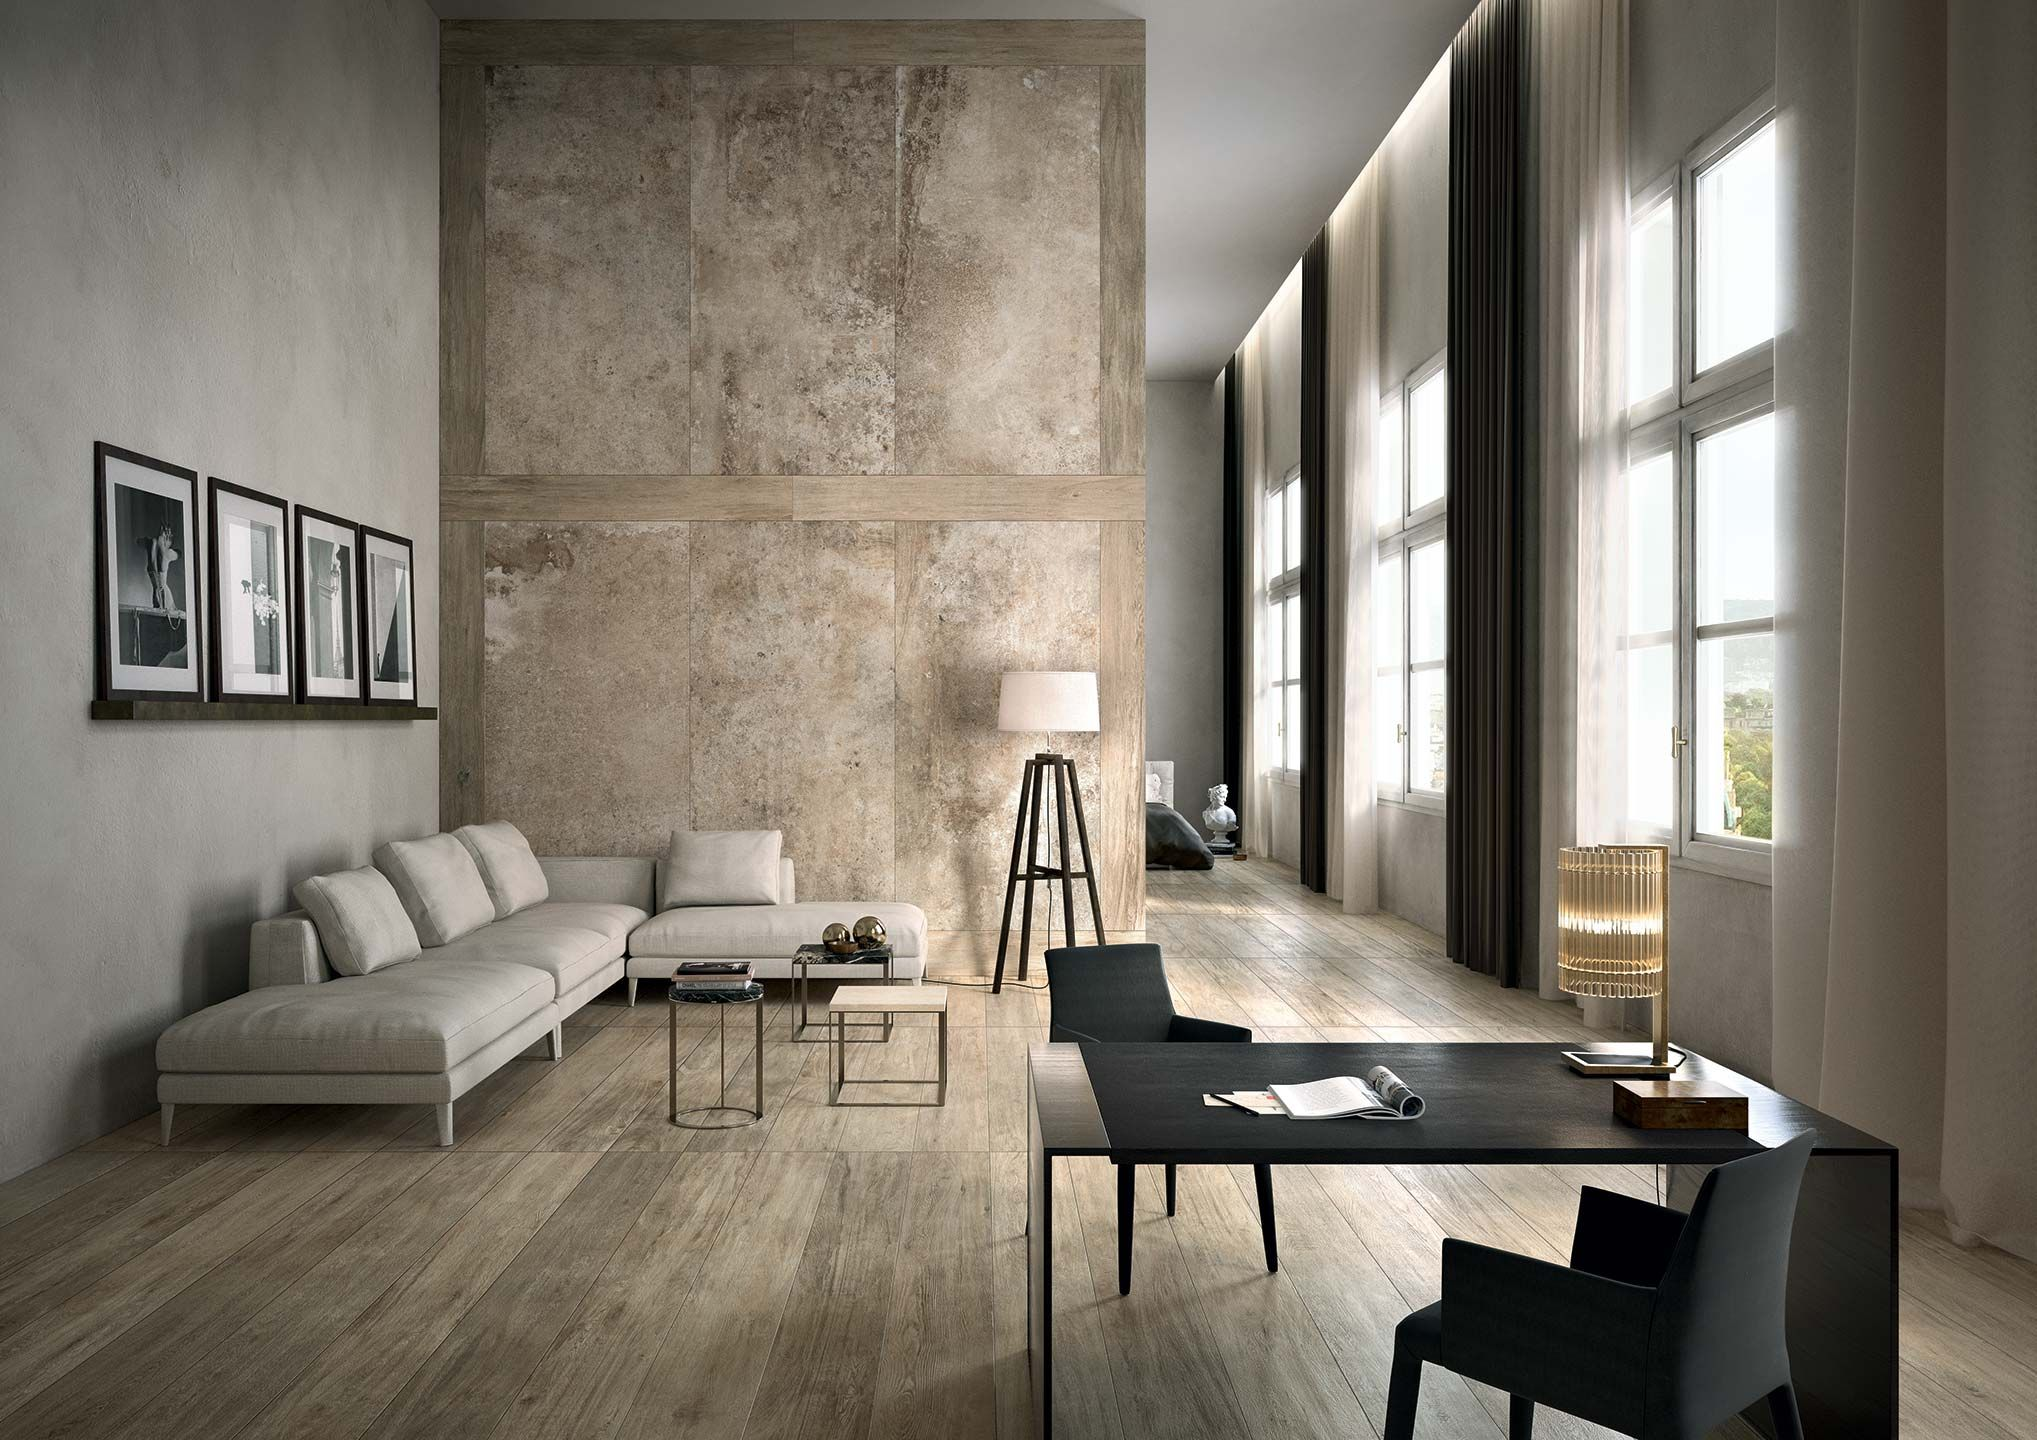 Ceramic Porcelain Stone Tiles For Floor And Wall La Roche Furniture Interior Design Interior #stone #tiles #for #living #room #wall